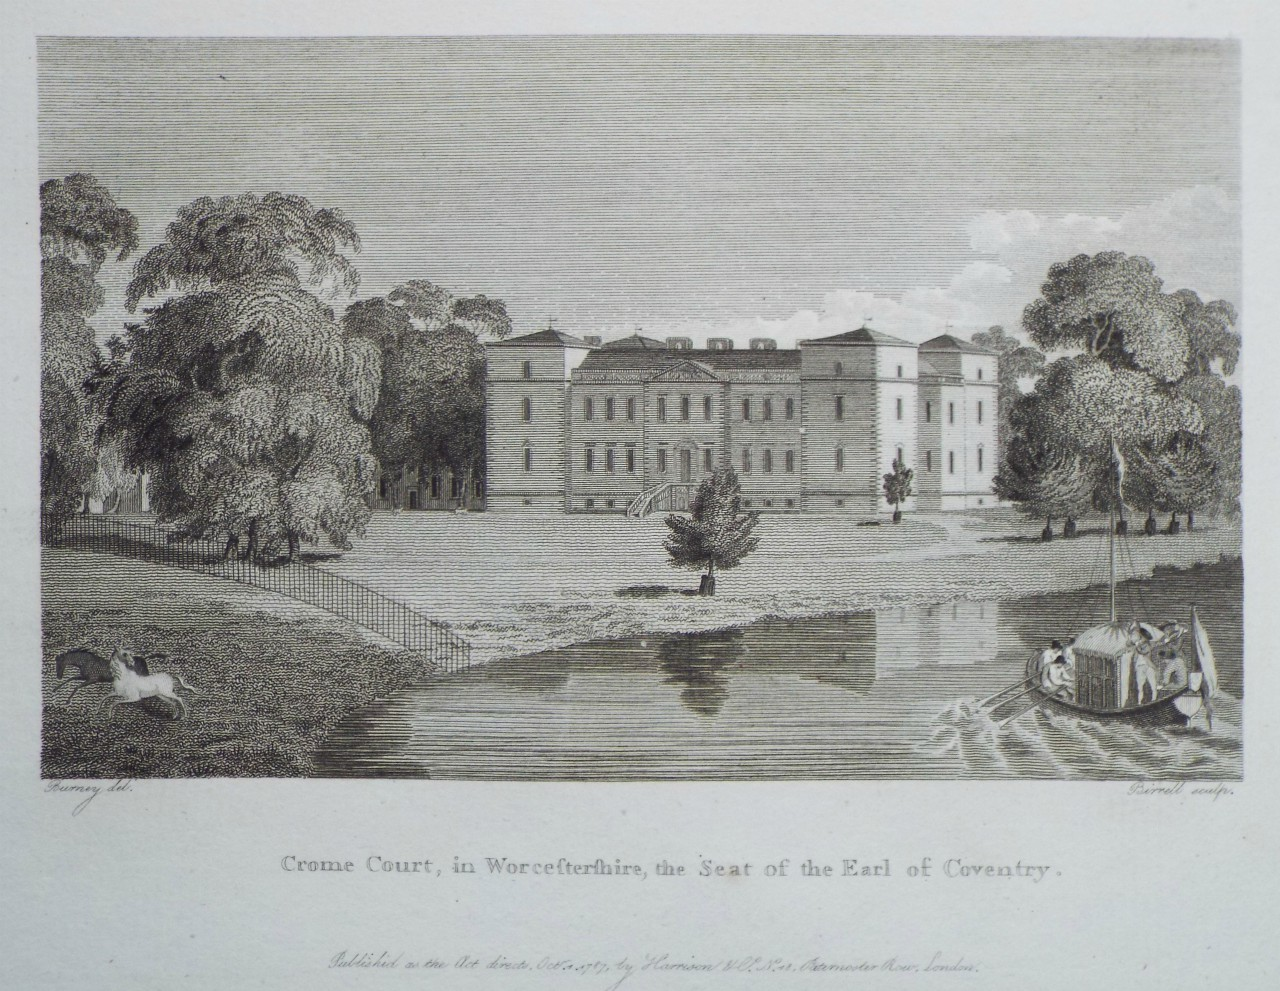 Print - Crome Court, in Worcestershire, the Seat of the Earl of Coventry. -